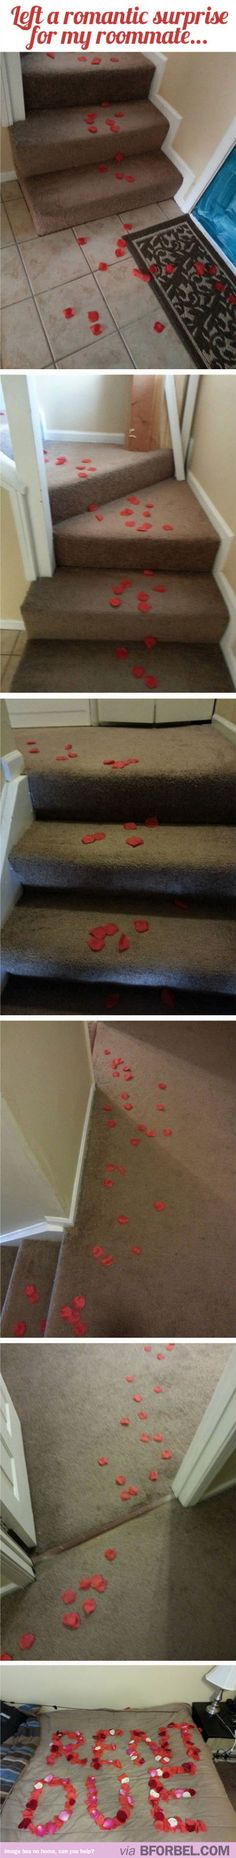 How to leave a romantic surprise for your roommate #college #friends